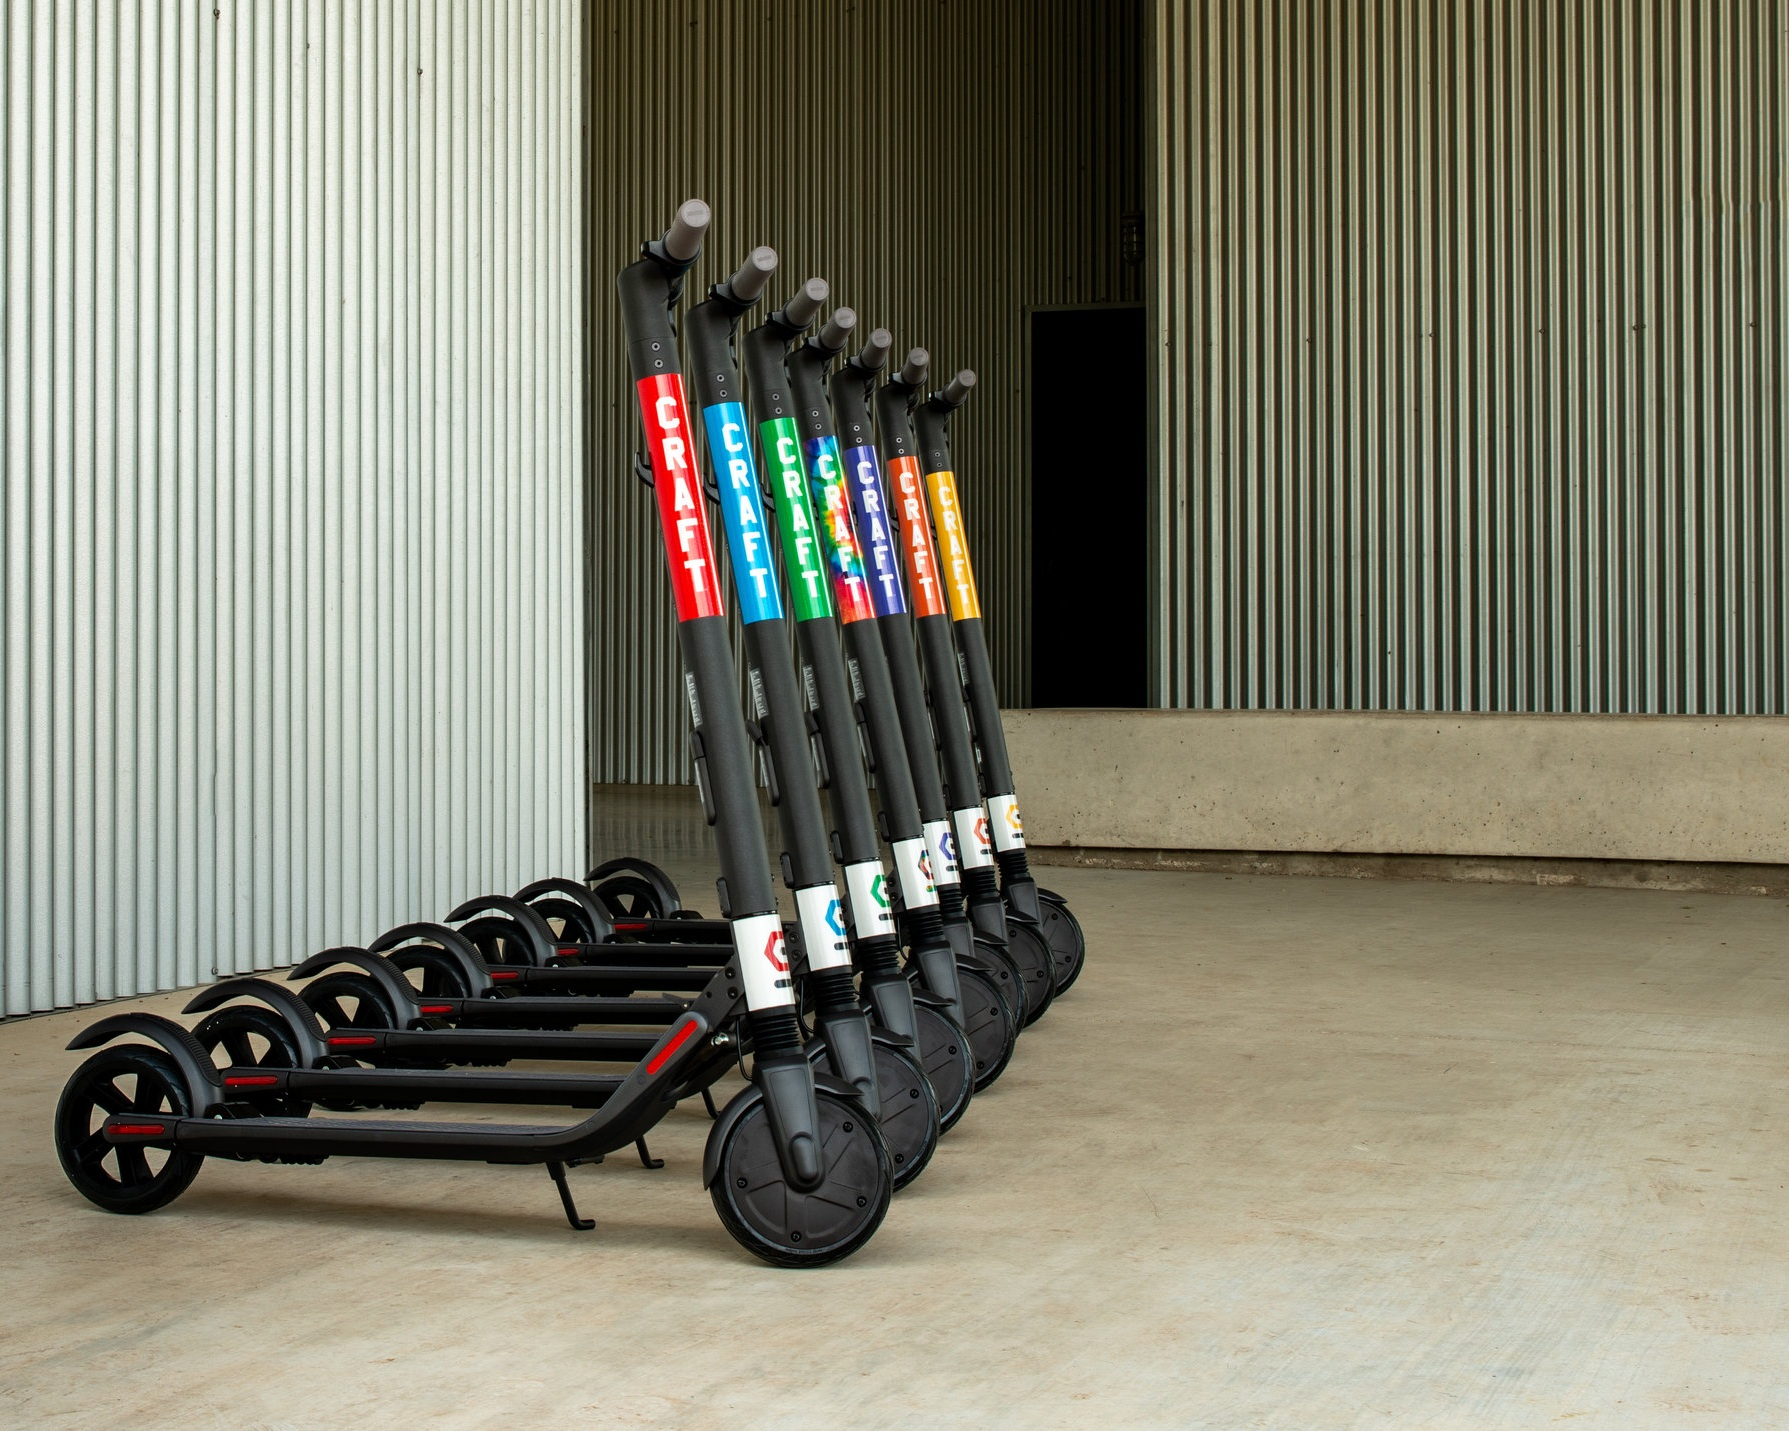 Why should you rent a CRAFT Scooter? - • Better in Every Way: CRAFT Scooters are less expensive, more reliable, and safer than